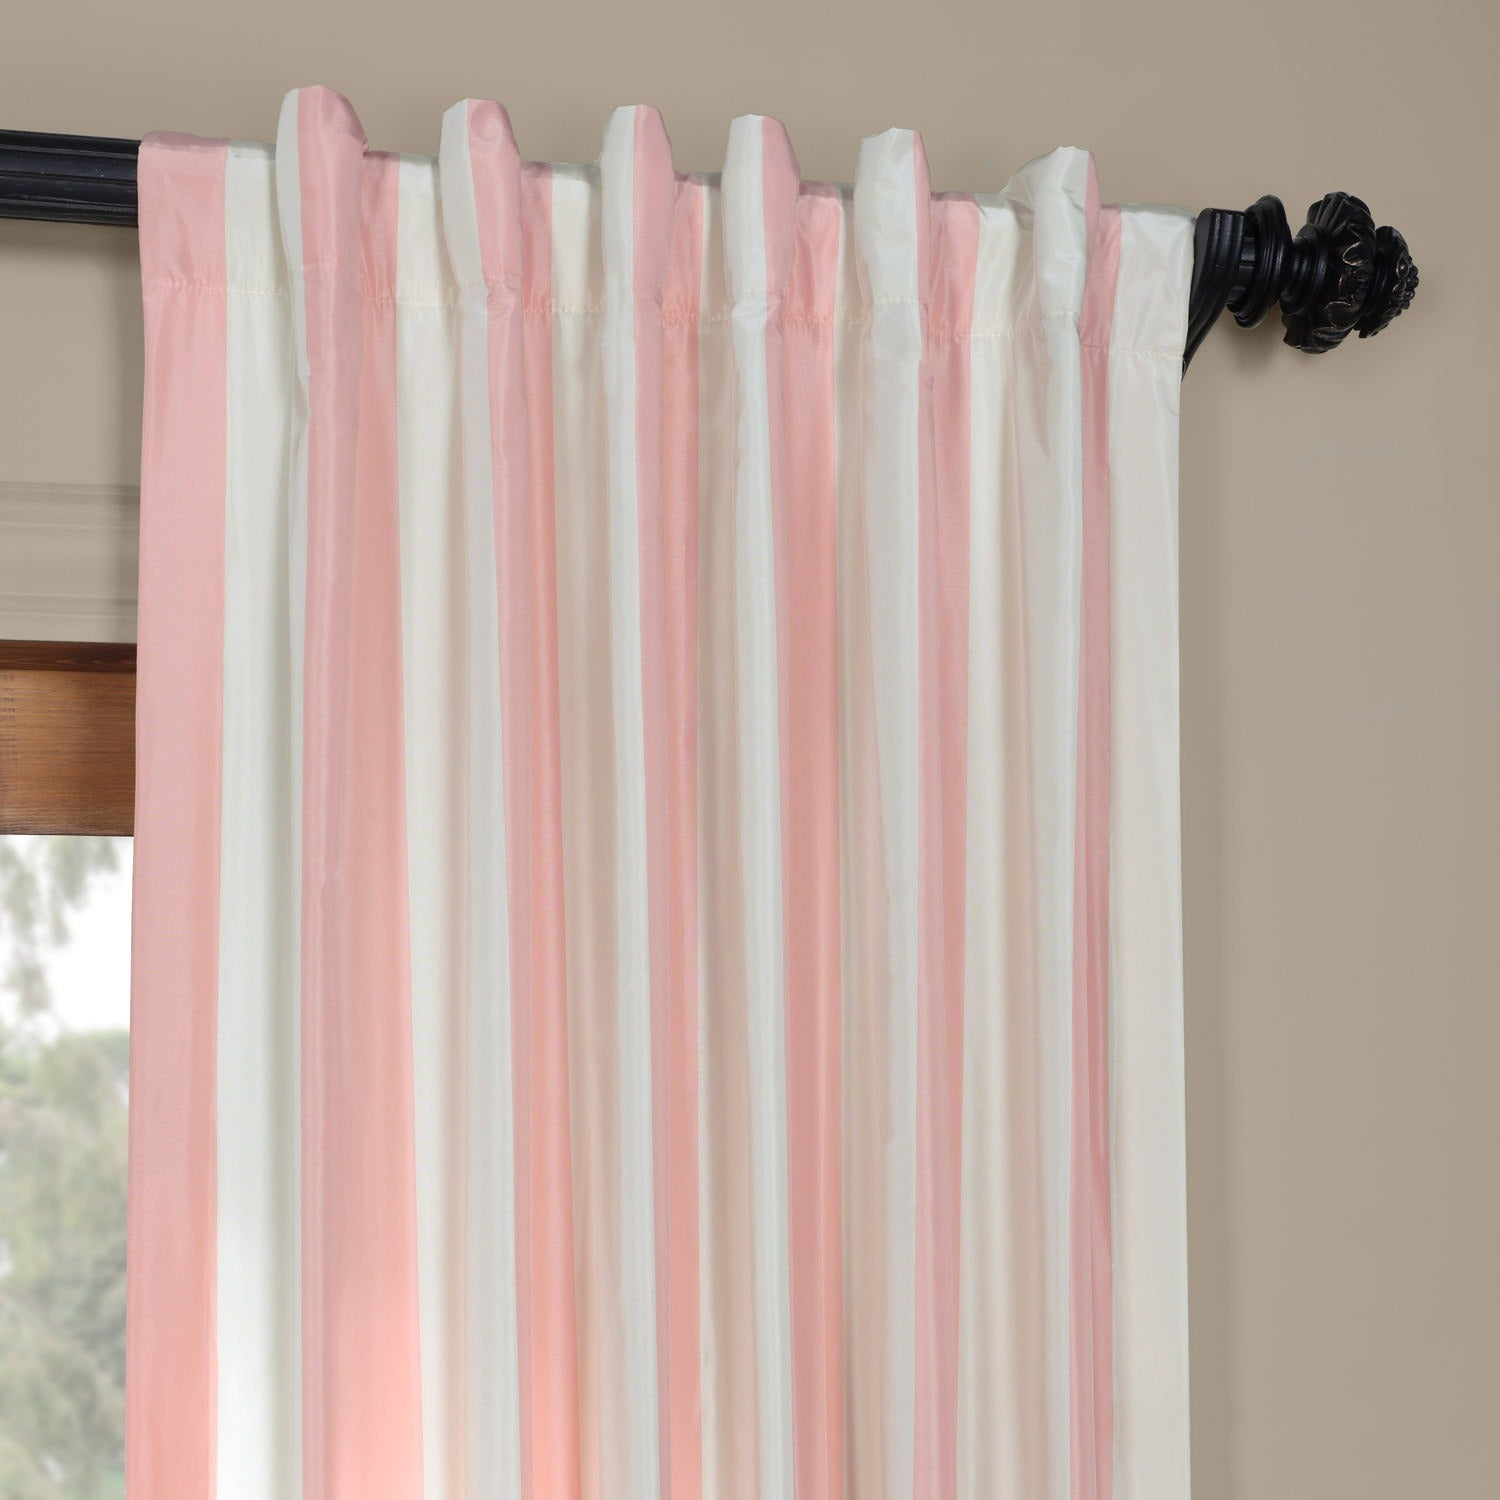 match home dotted ruffle mix size beautiful curtain curtains full image ideas of lace colored blush valance blackout pink aurora impressive